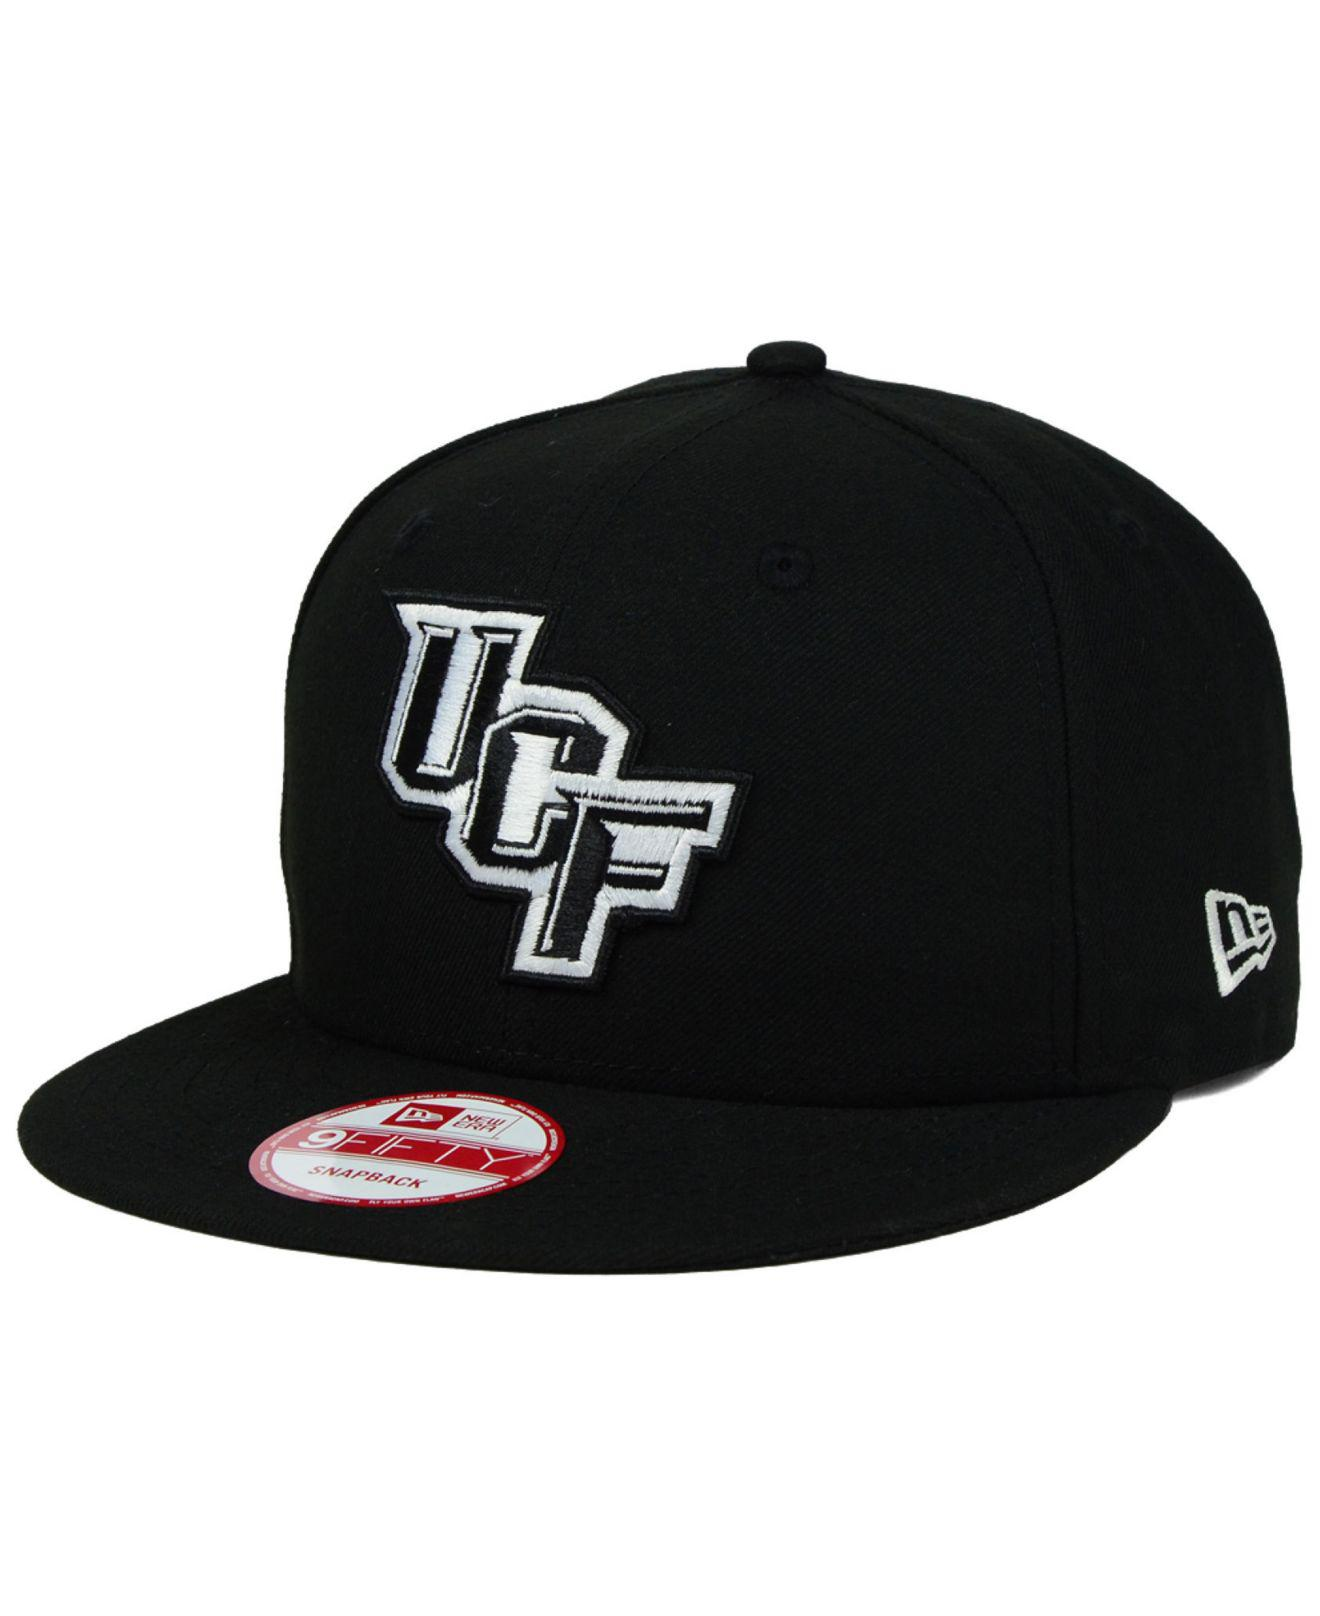 fd61e7fa620 Lyst - Ktz Ucf Knights Black White 9fifty Snapback Cap in Black for Men